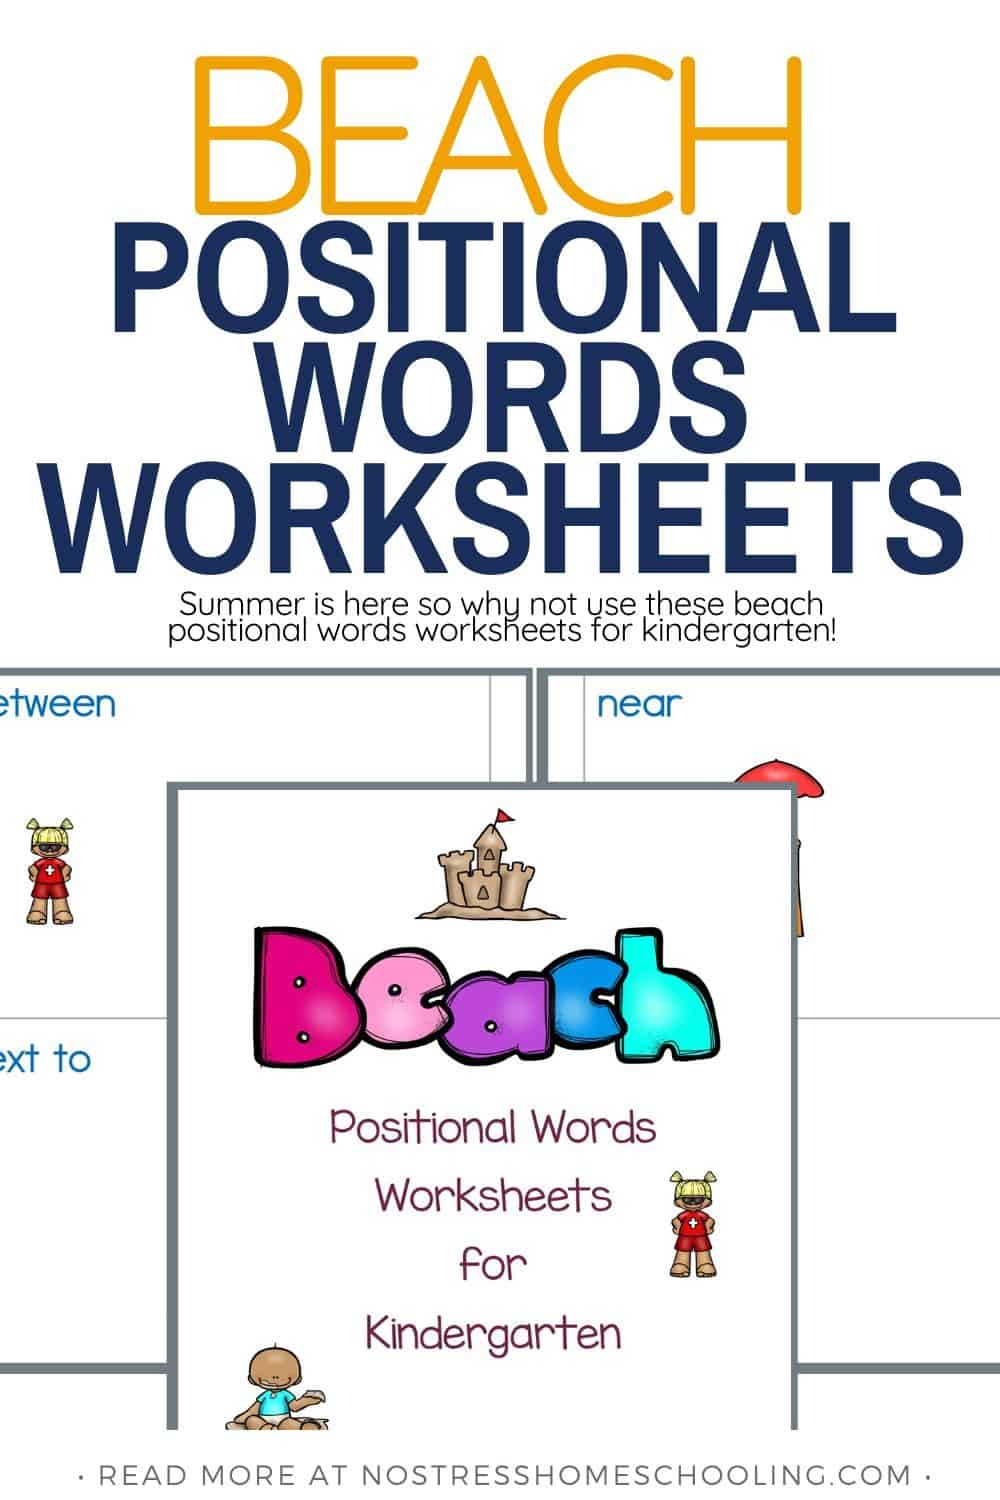 Summer is here so why not use these beach positional words worksheets for kindergarten!